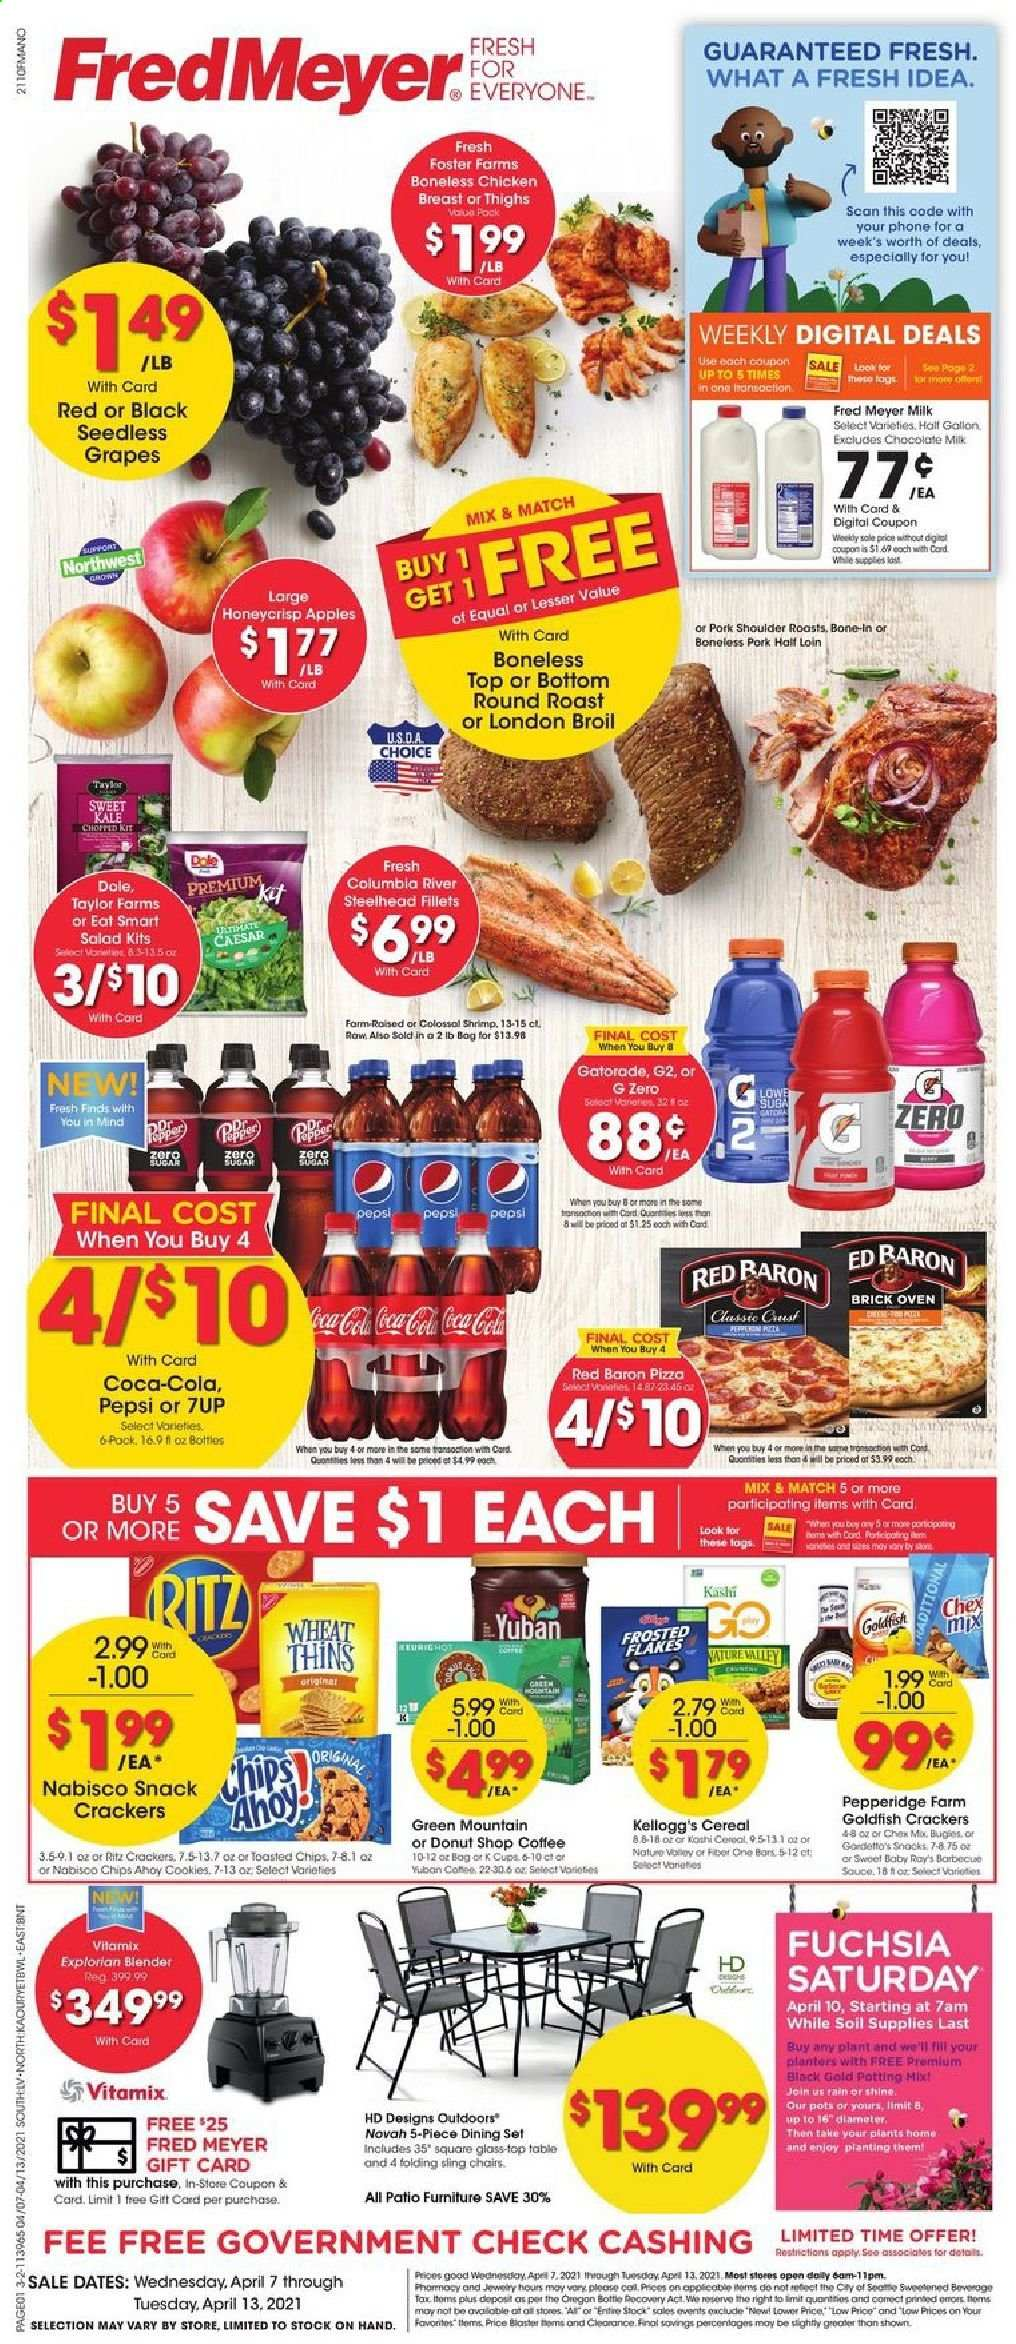 Fred Meyer Flyer - 04.07.2021 - 04.13.2021 - Sales products - seedless grapes, salad, Dole, apples, grapes, shrimps, pizza, milk, Red Baron, cookies, chocolate, snack, crackers, Kellogg's, RITZ, chips, Thins, Goldfish, Chex Mix, cereals, Frosted Flakes, Fiber One, Planters, Coca-Cola, Pepsi, 7UP, Gatorade, tea, coffee, coffee capsules, K-Cups, Green Mountain, chicken breasts, chicken meat, beef meat, round roast, pork meat, pork shoulder, pot, cup, plant, kale. Page 1.